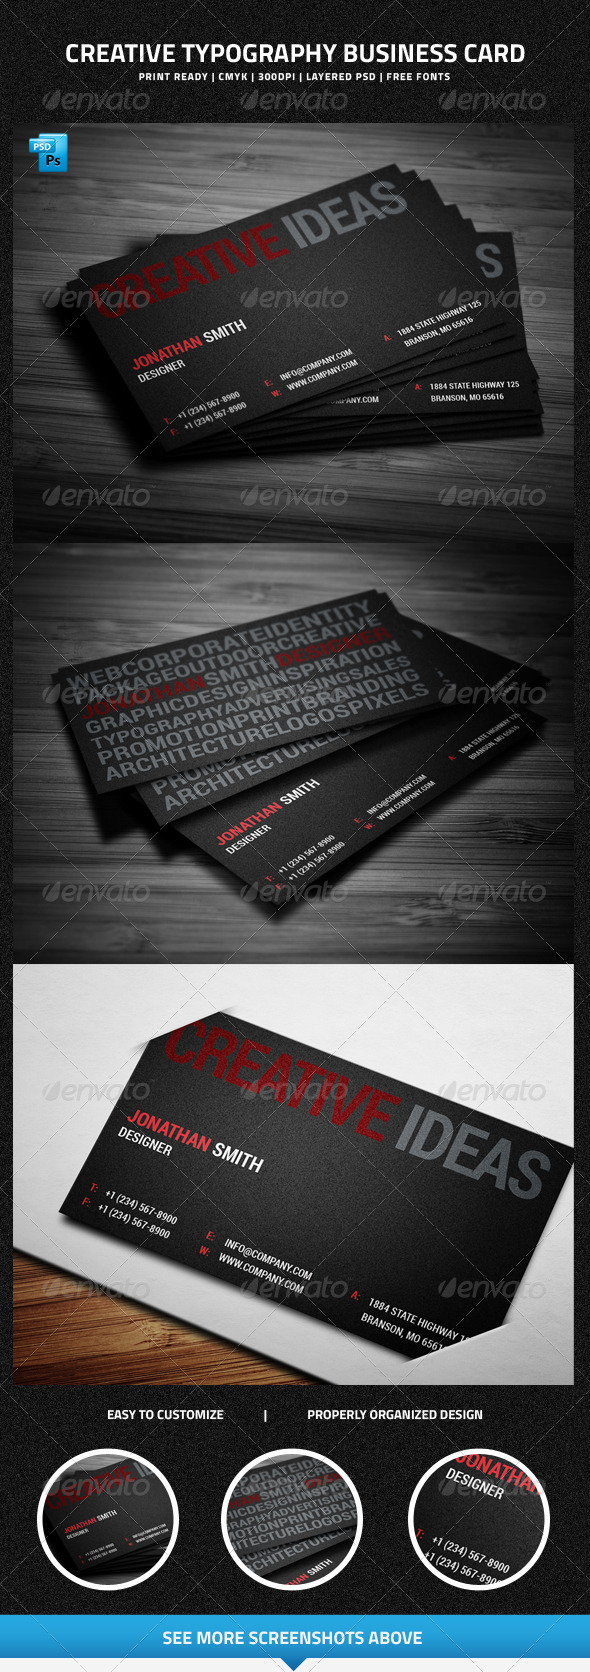 Creative Typography Business Card - 25 - Creative Business Cards